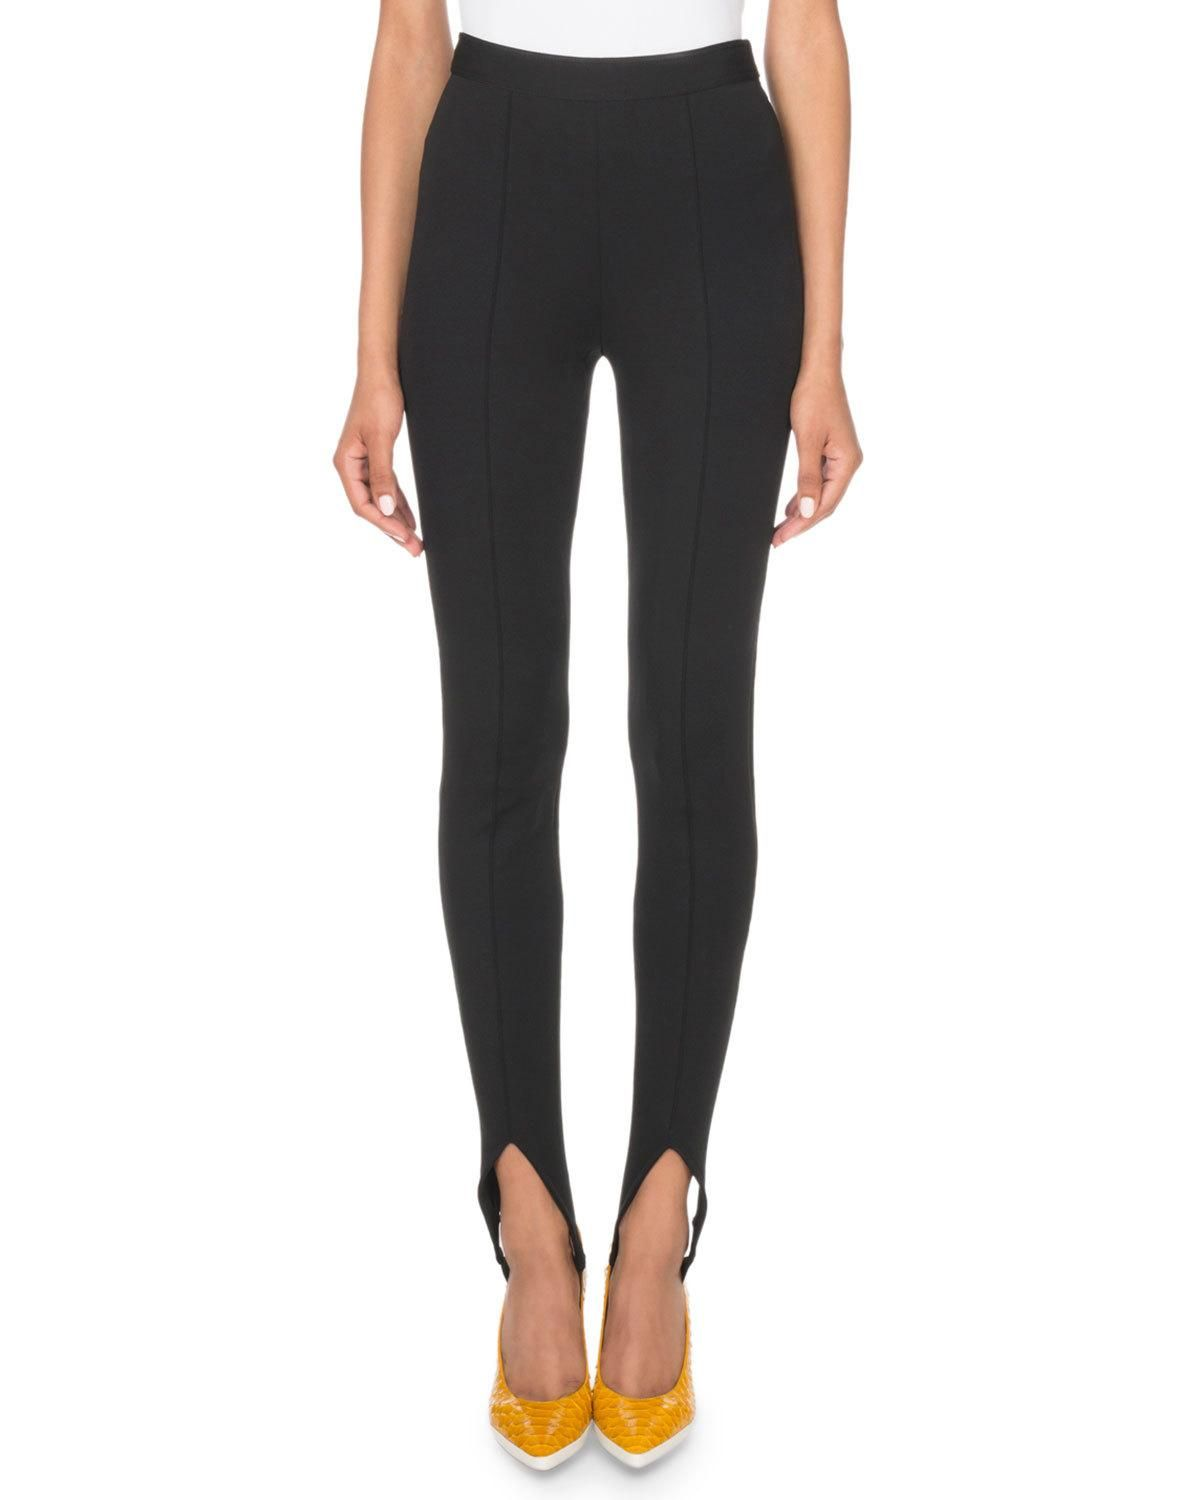 7d8497f9d1799 Mid-Rise Pull-On Stirrup Leggings-now | NOW! in 2019 | Stirrup ...